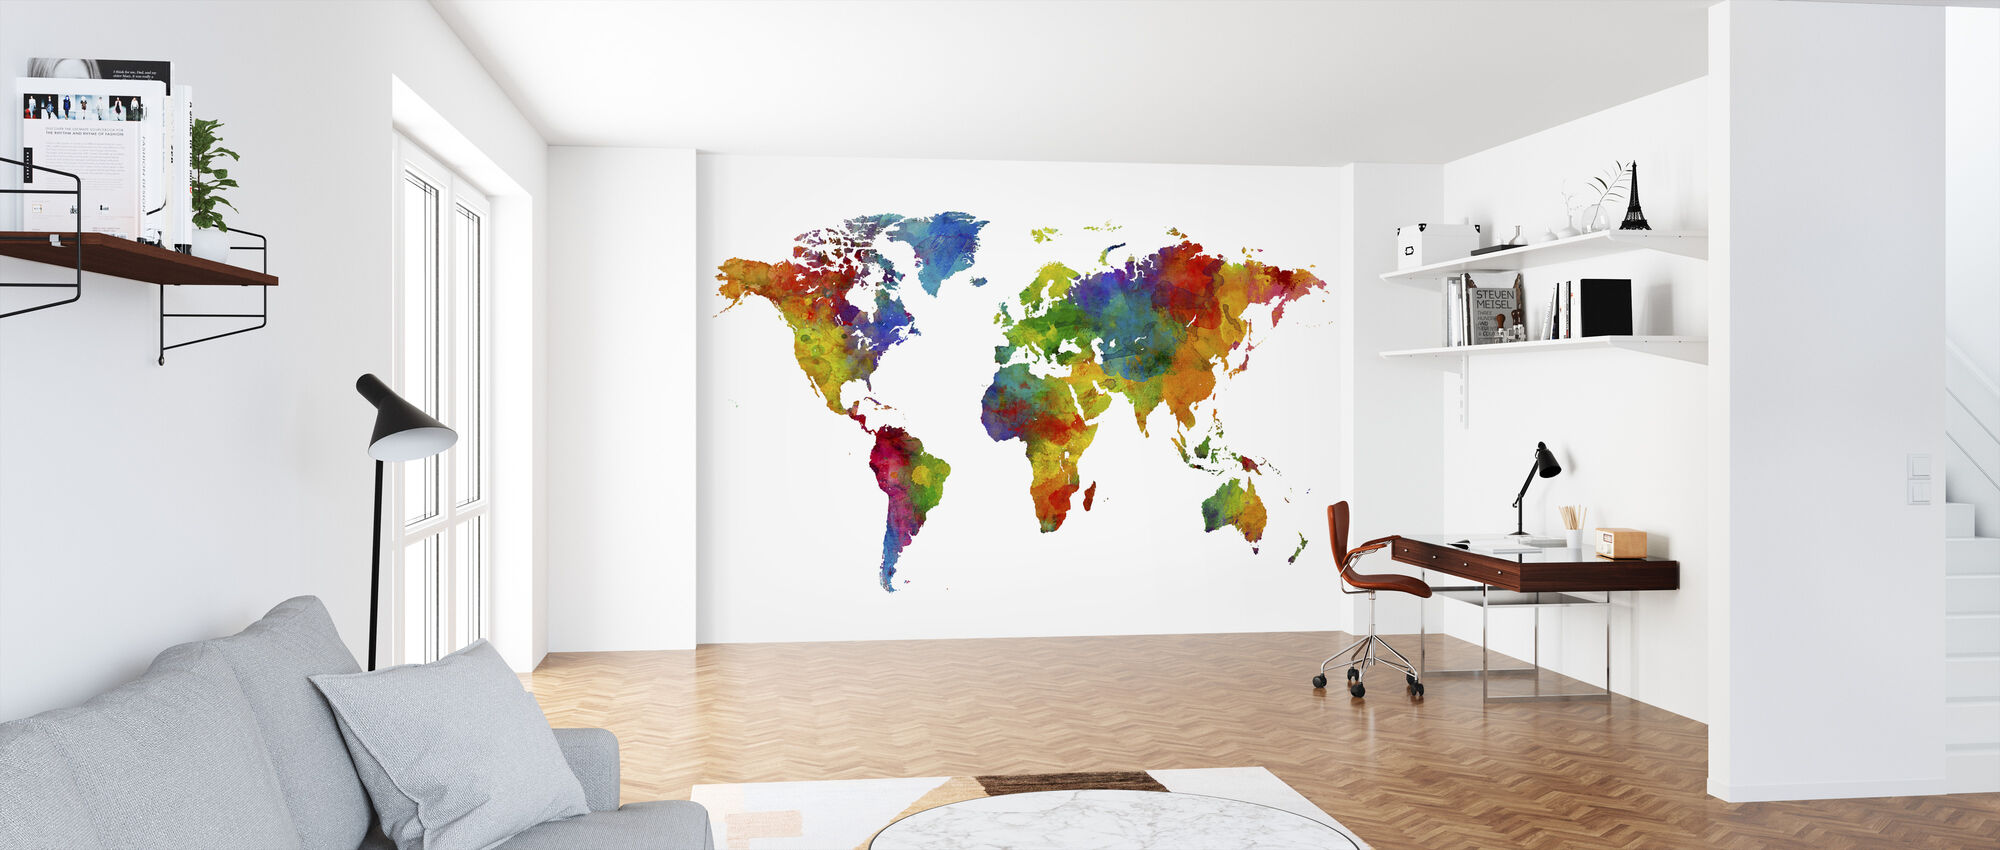 Watercolour World Map Multicolour - Wallpaper - Office